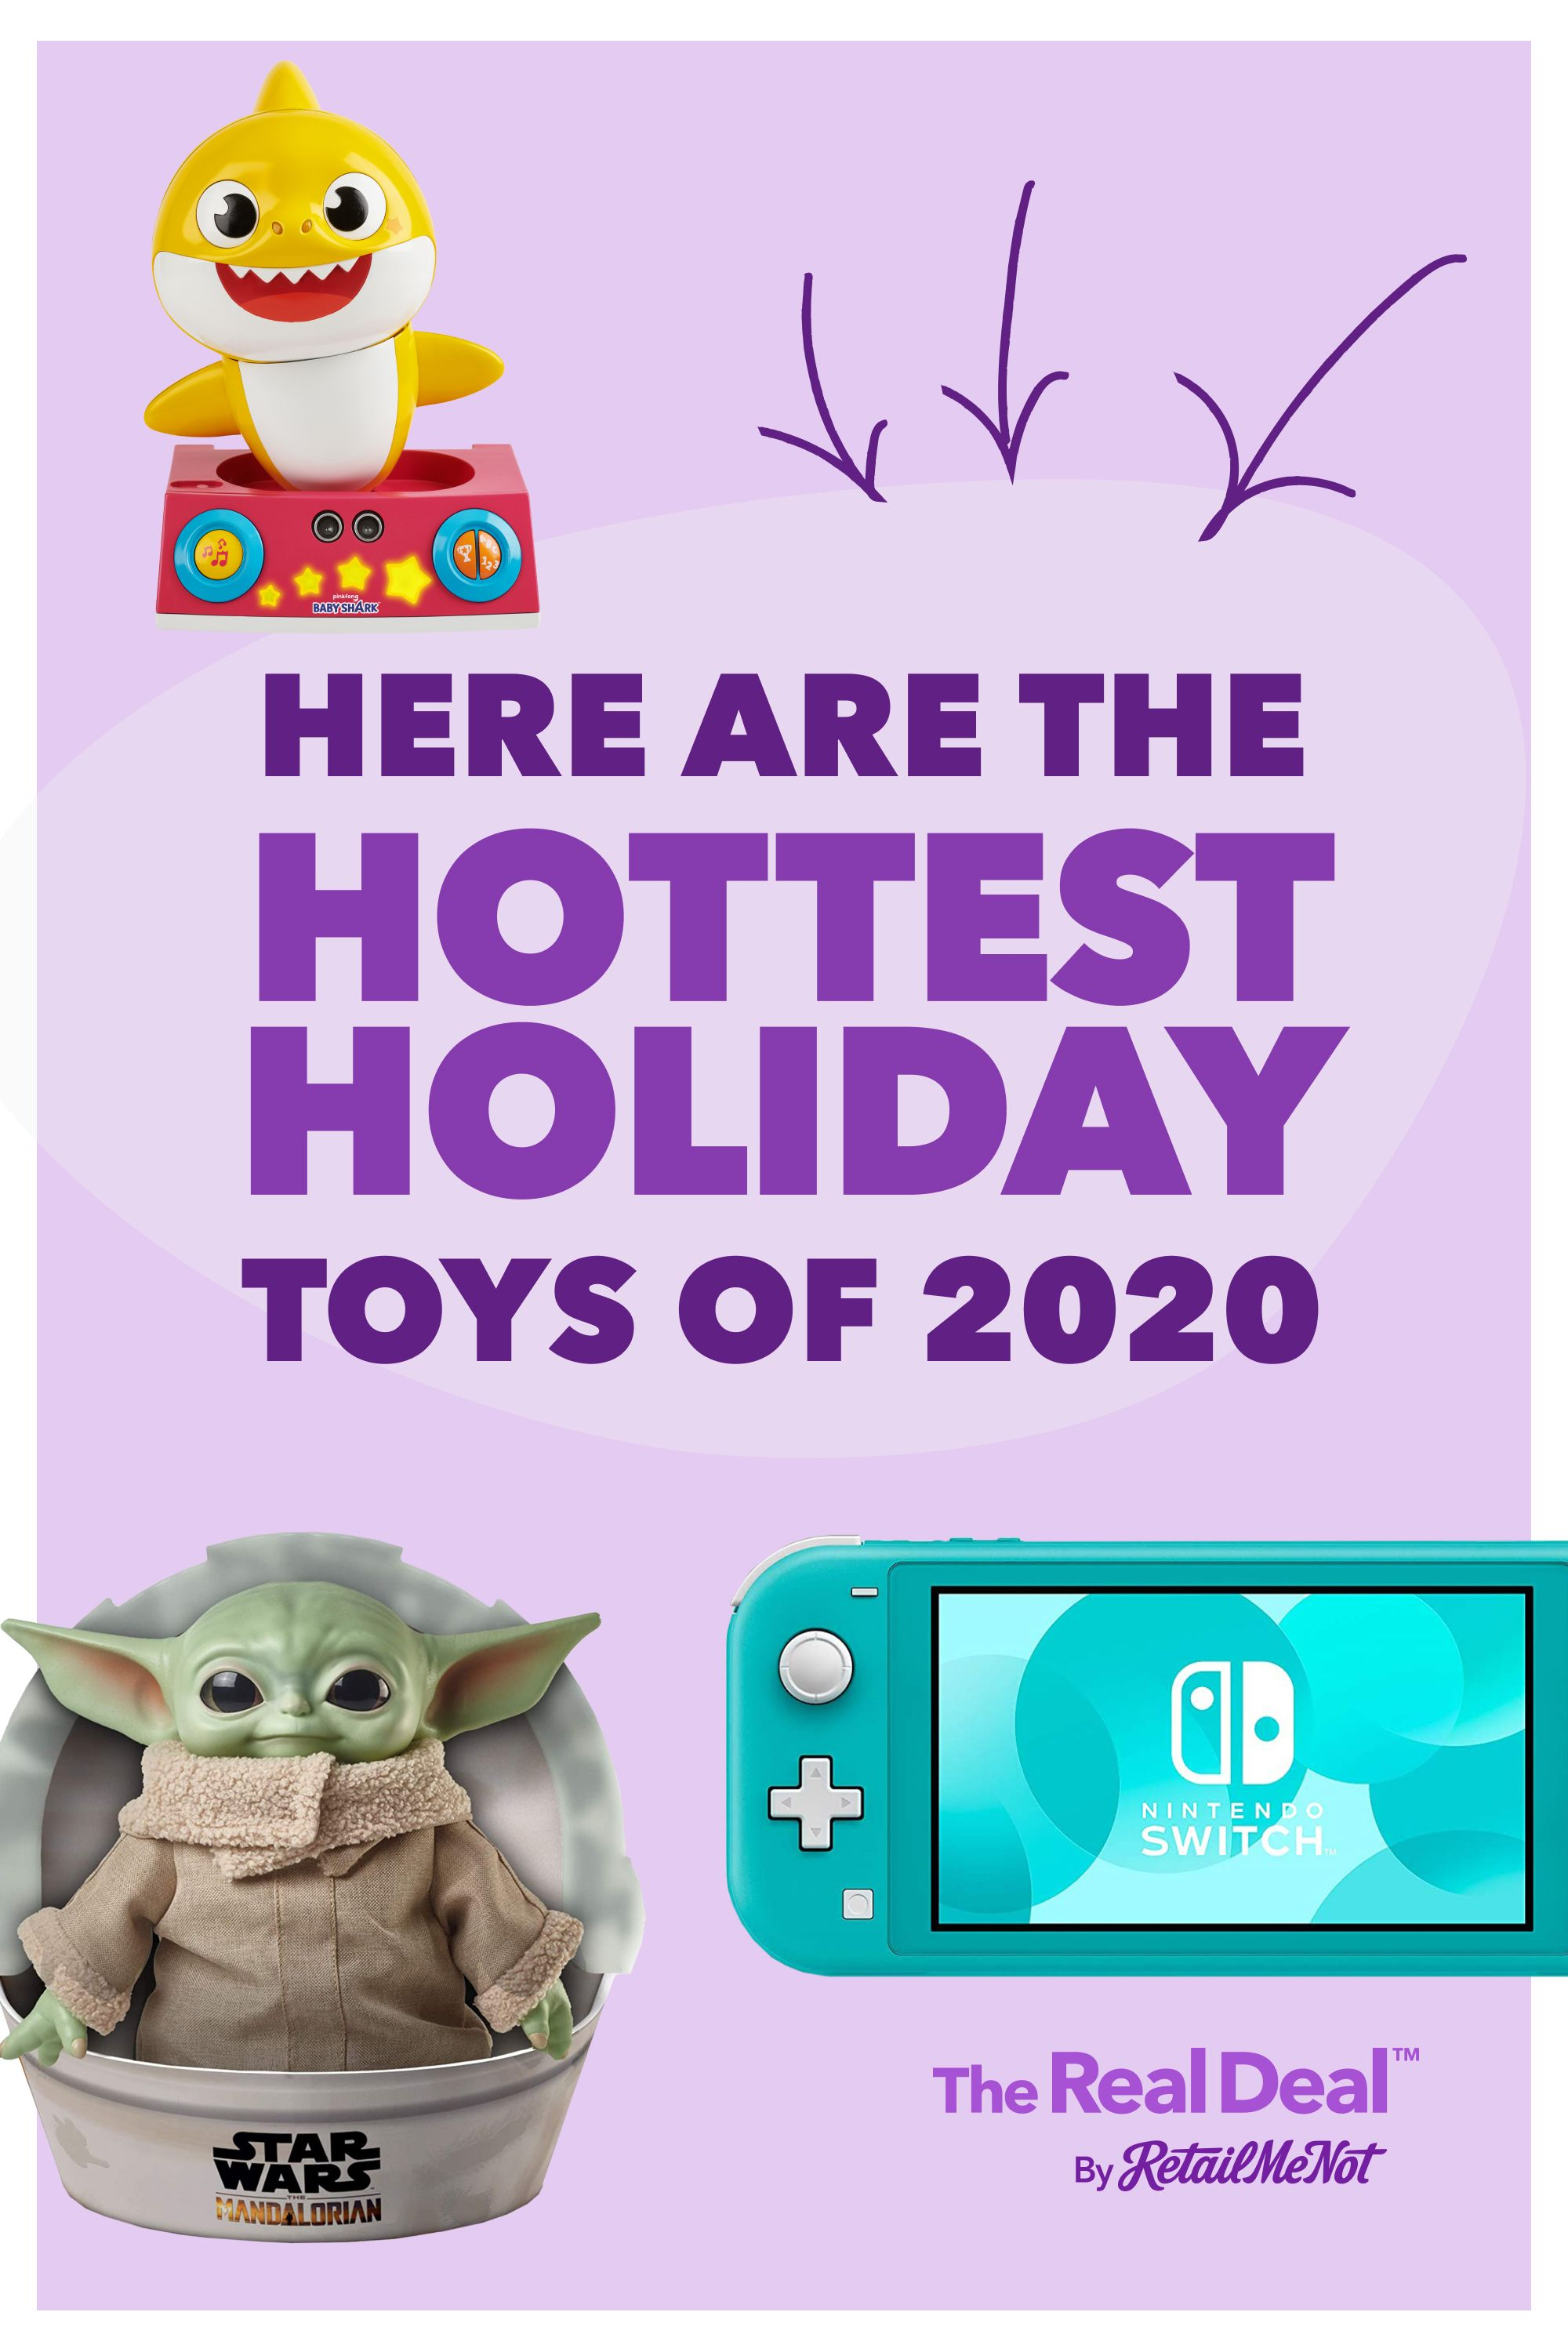 The Ultimate List Of 2020 Hot Holiday Toy Predictions By Retailmenot In 2020 Holiday Toys Top Holiday Toys Christmas Toys